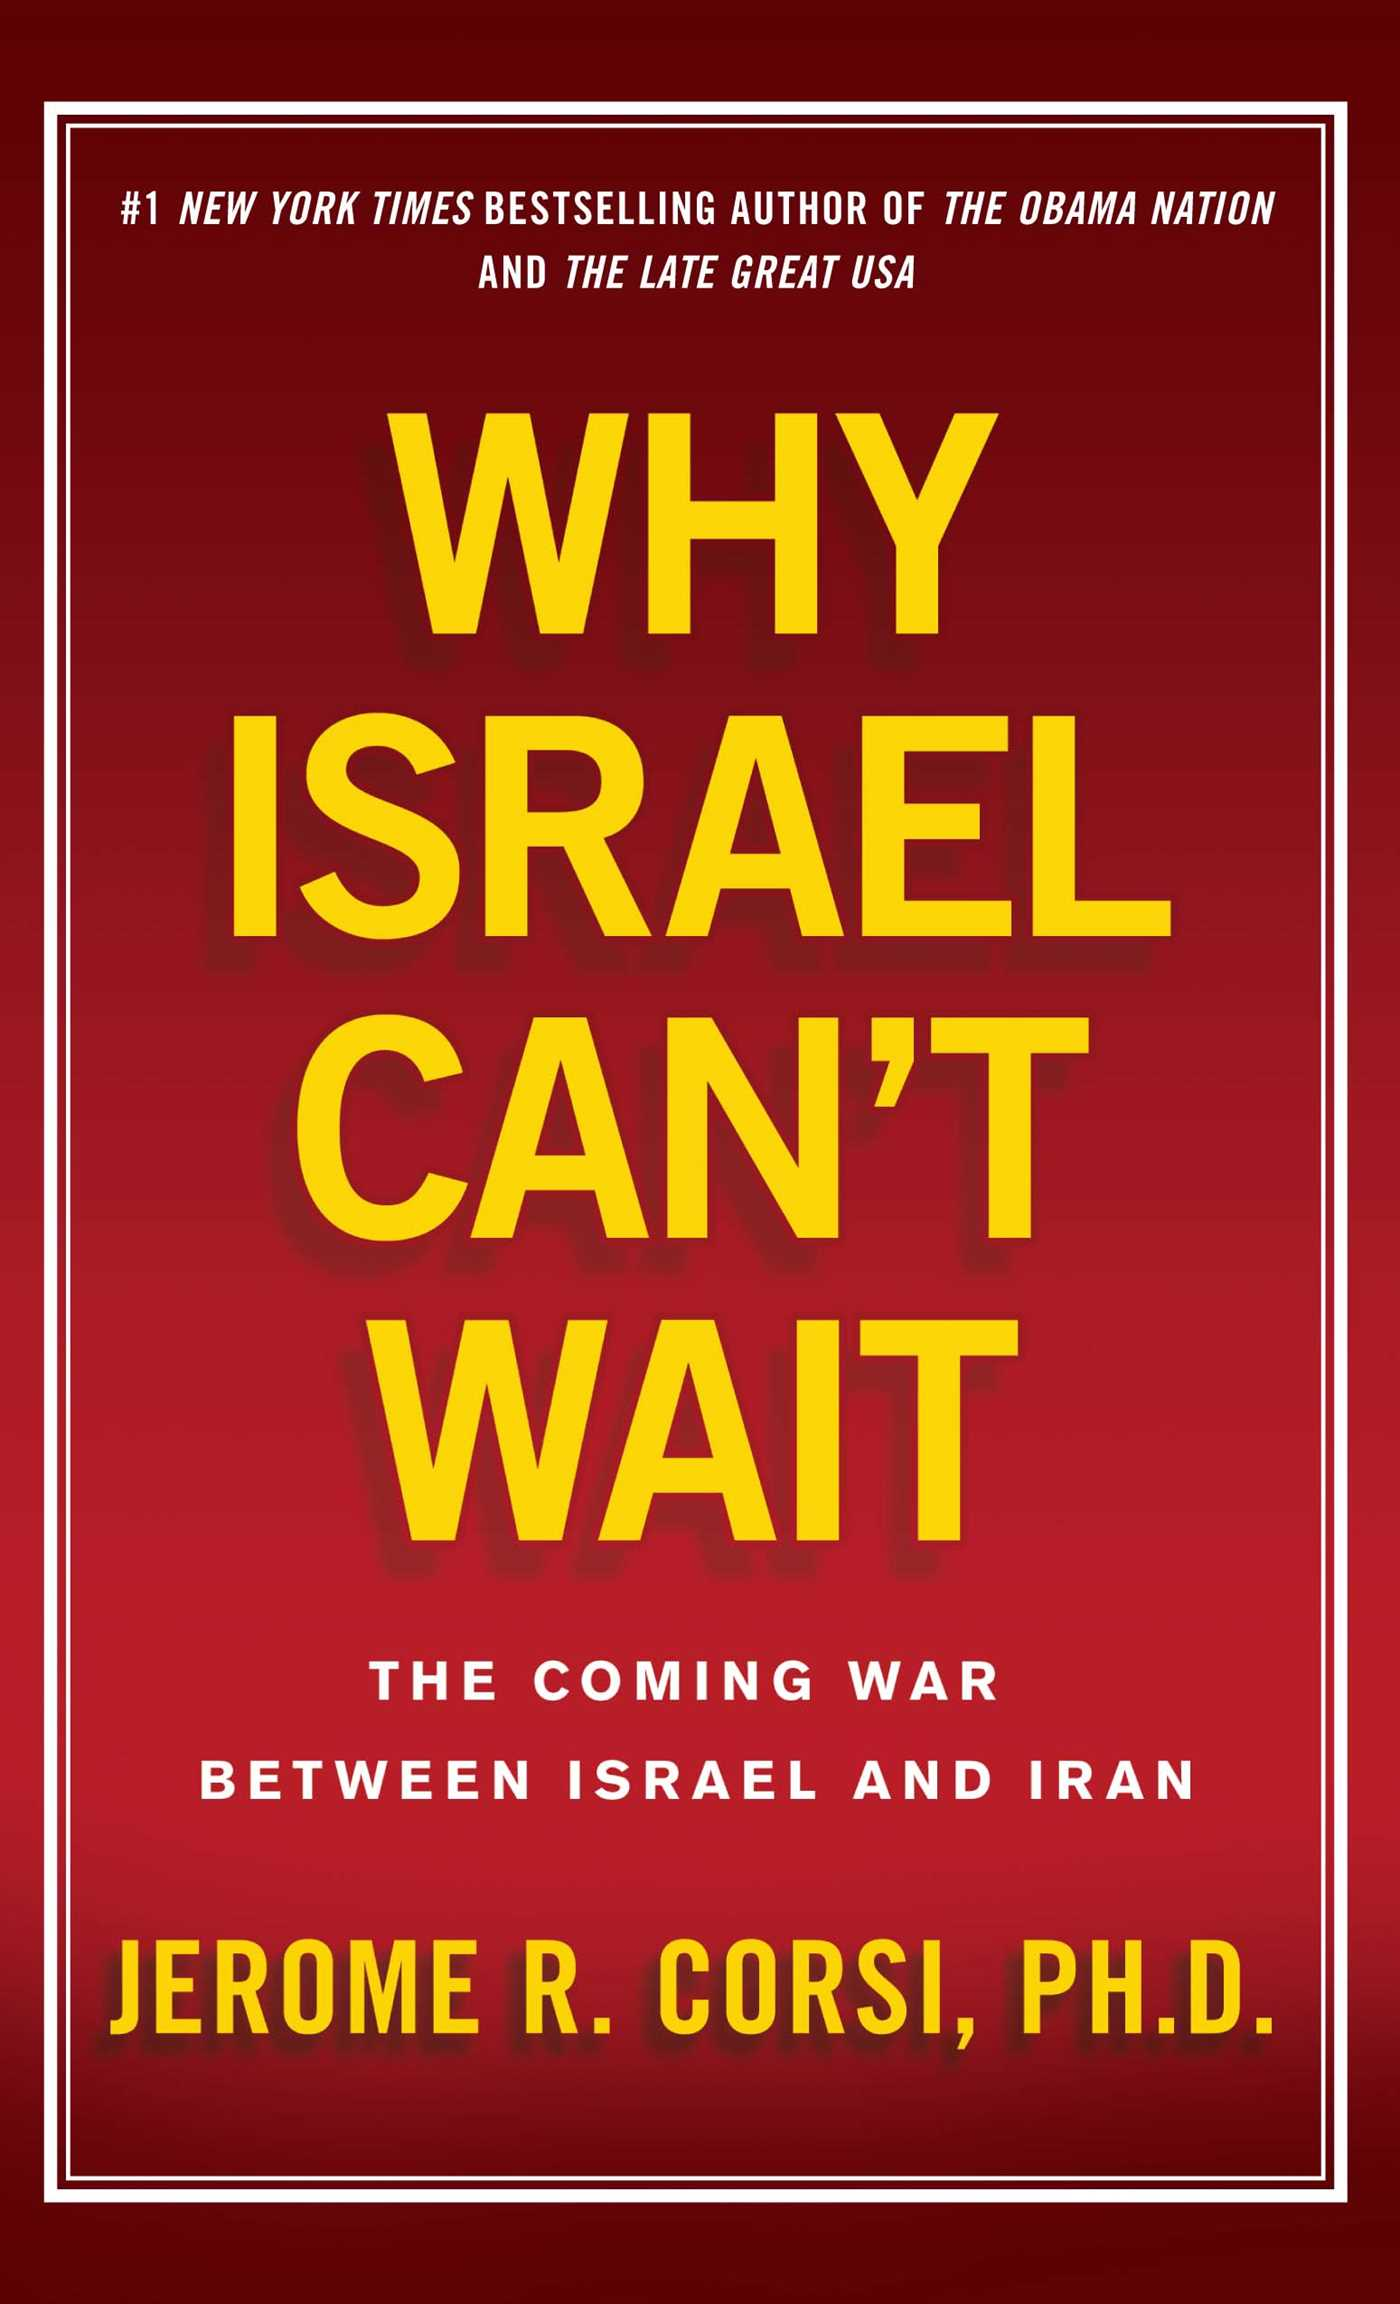 Why israel cant wait 9781439183014 hr